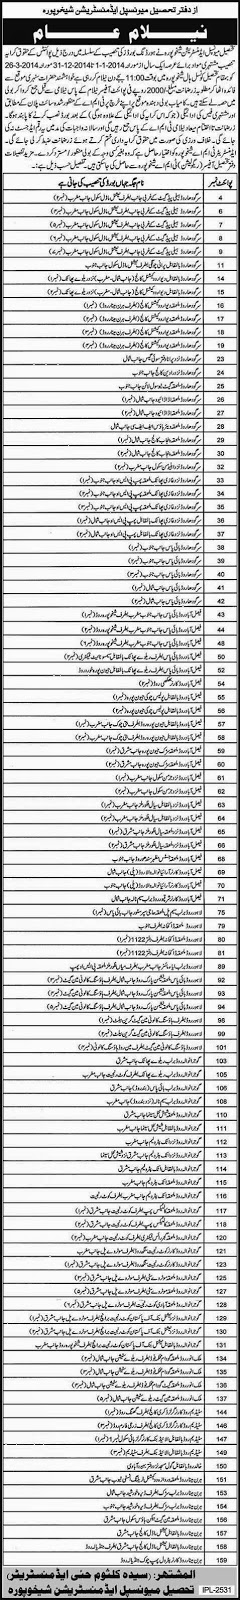 Tma Sheikhupura Auction Notice 2014